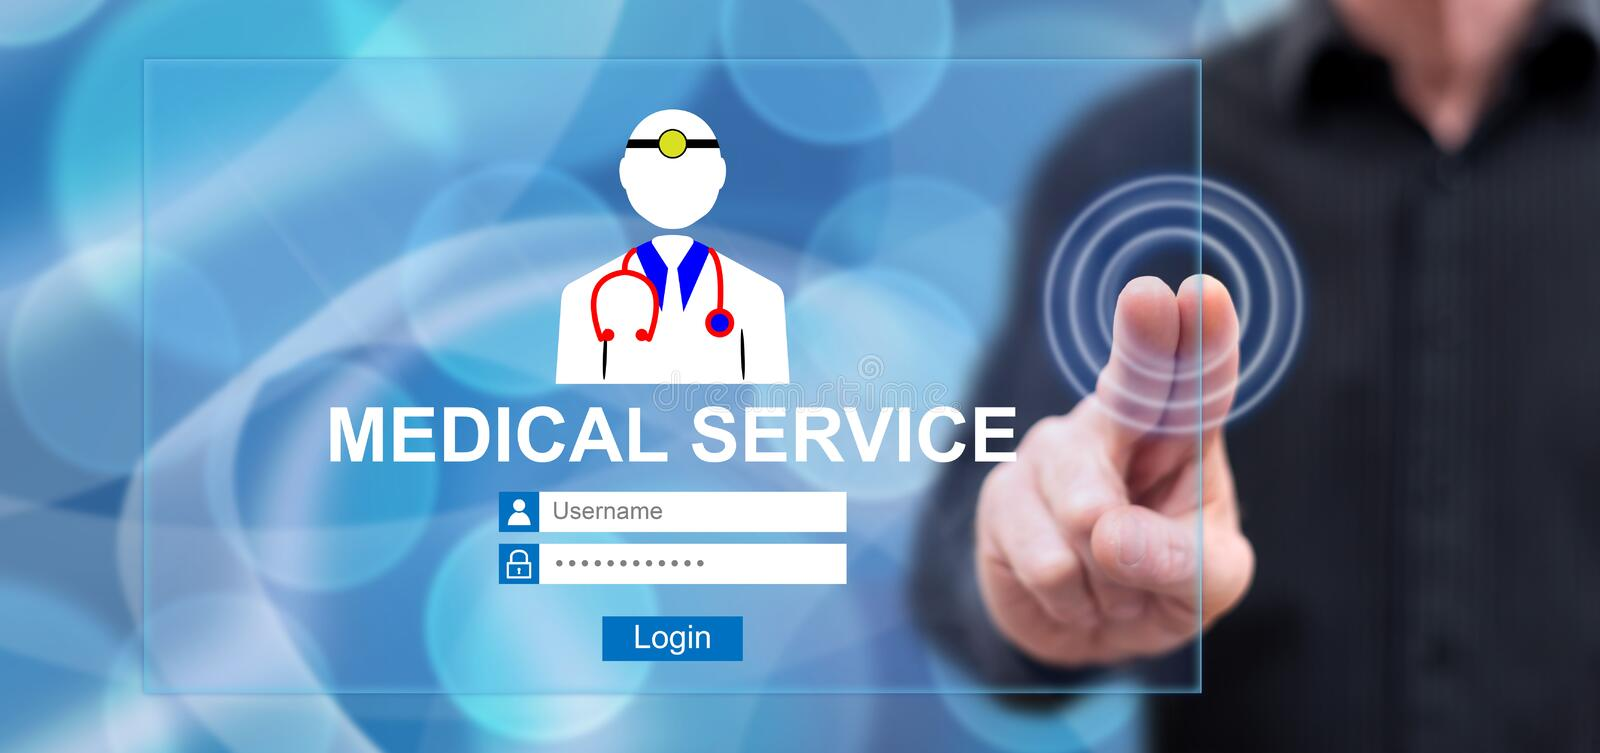 Man touching an online medical service concept royalty free stock images